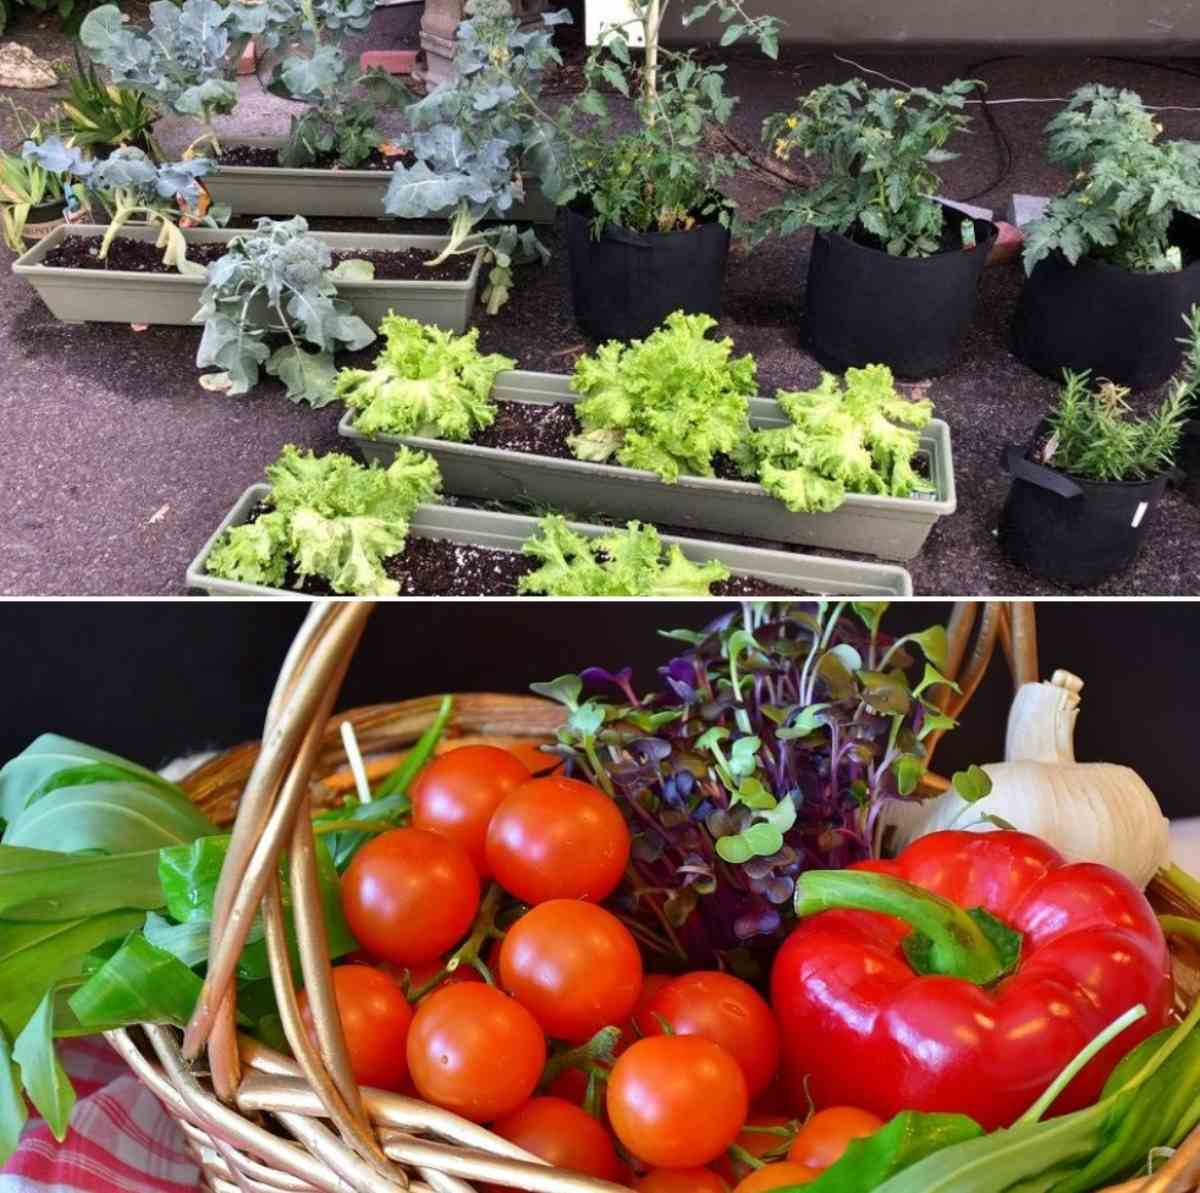 Vegetbale Gardening in Containers.